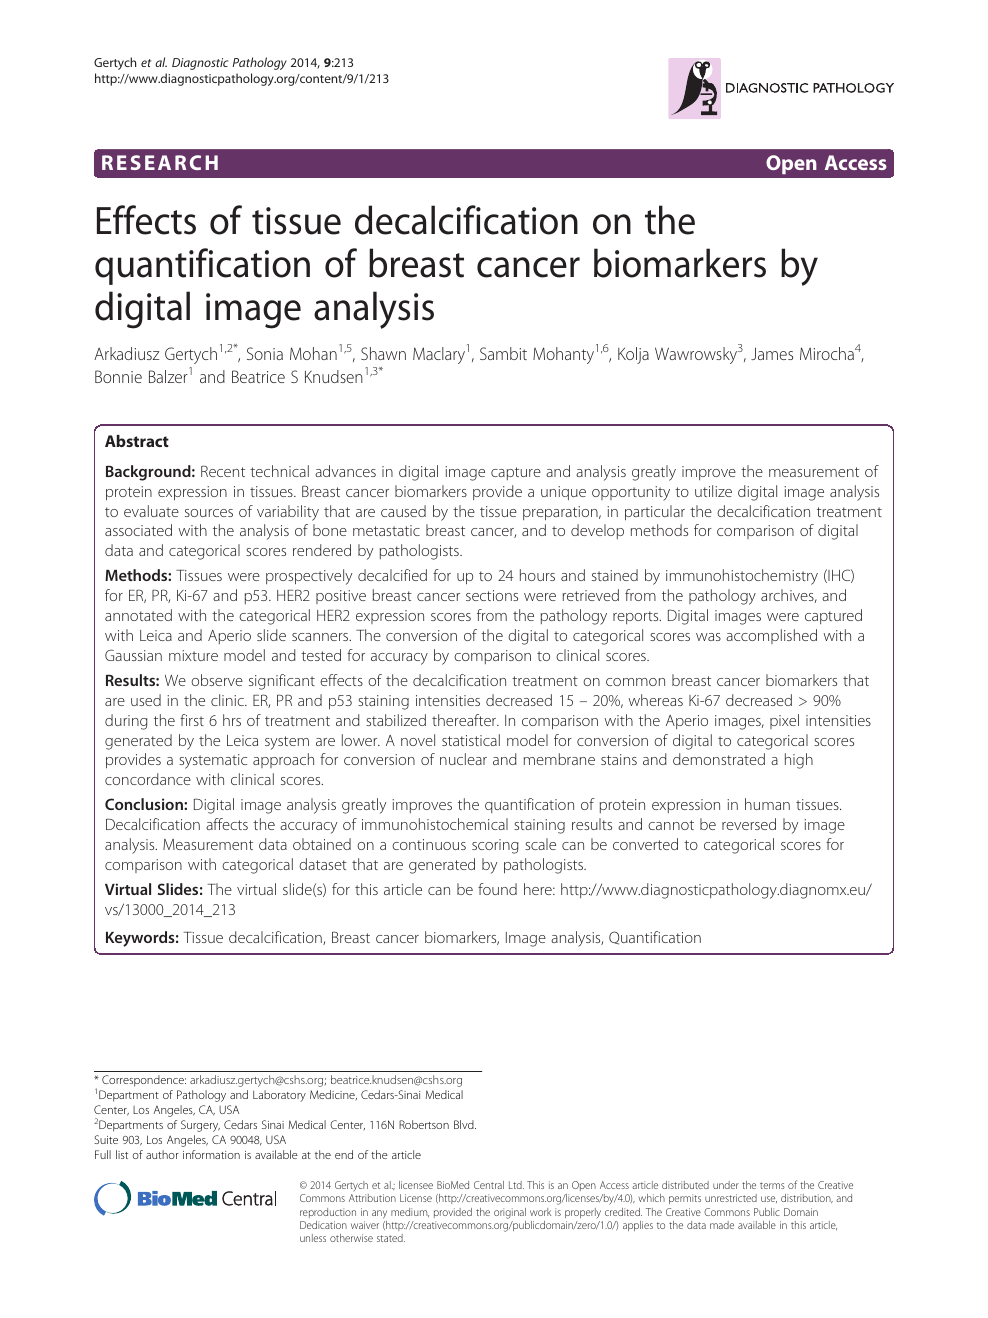 Effects of tissue decalcification on the quantification of breast